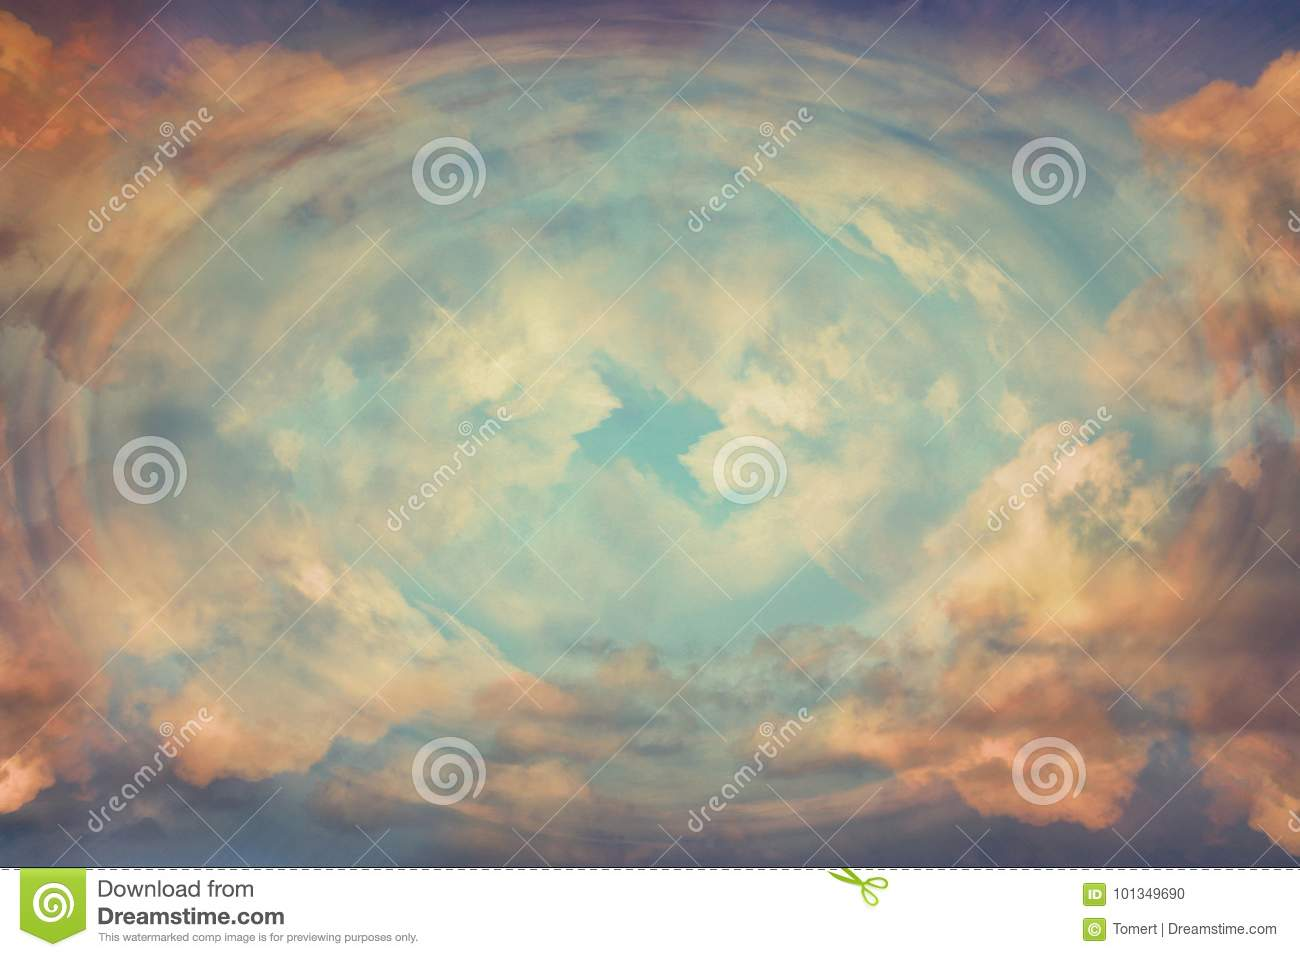 Abstract heavenly background, light from heaven. Revelation concept